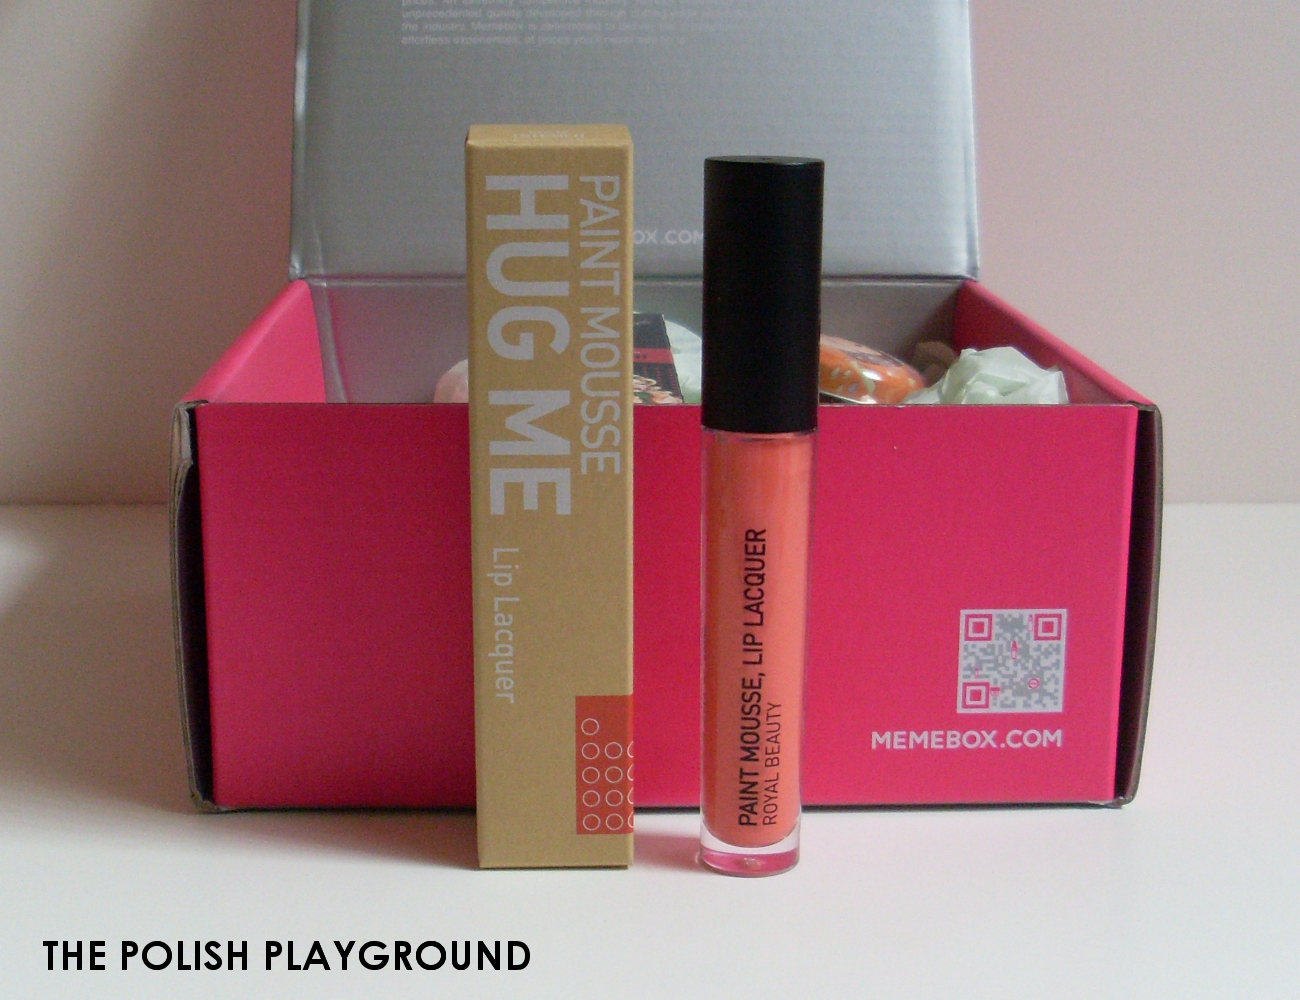 Memebox Superbox #49 All About Lips Unboxing - ROYAL NATURE Paint Mousse Lip Lacquer in 02 OR315 Hug Me